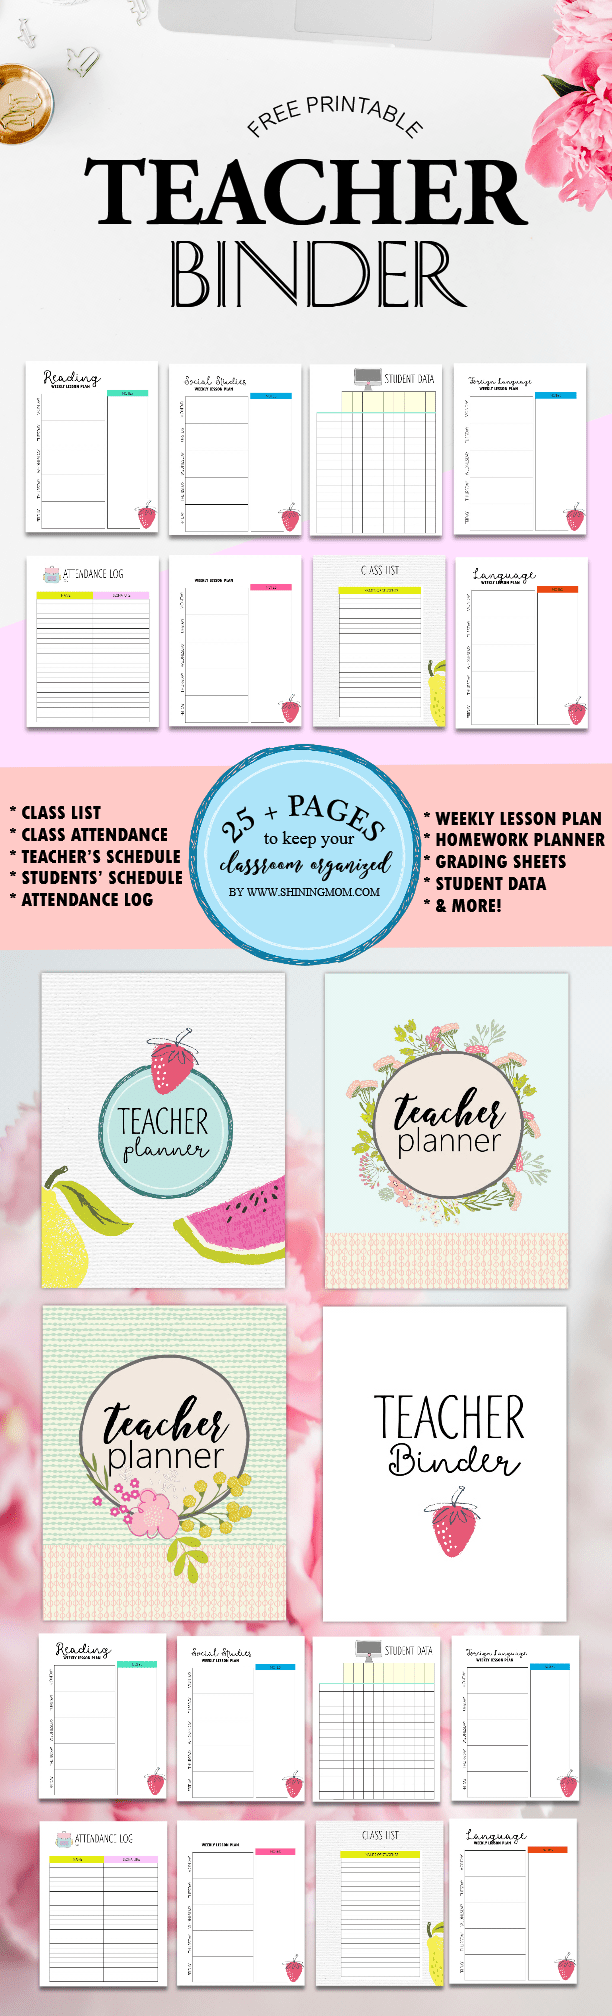 Classroom Ideas Printables ~ Free teacher binder printables over pretty planning